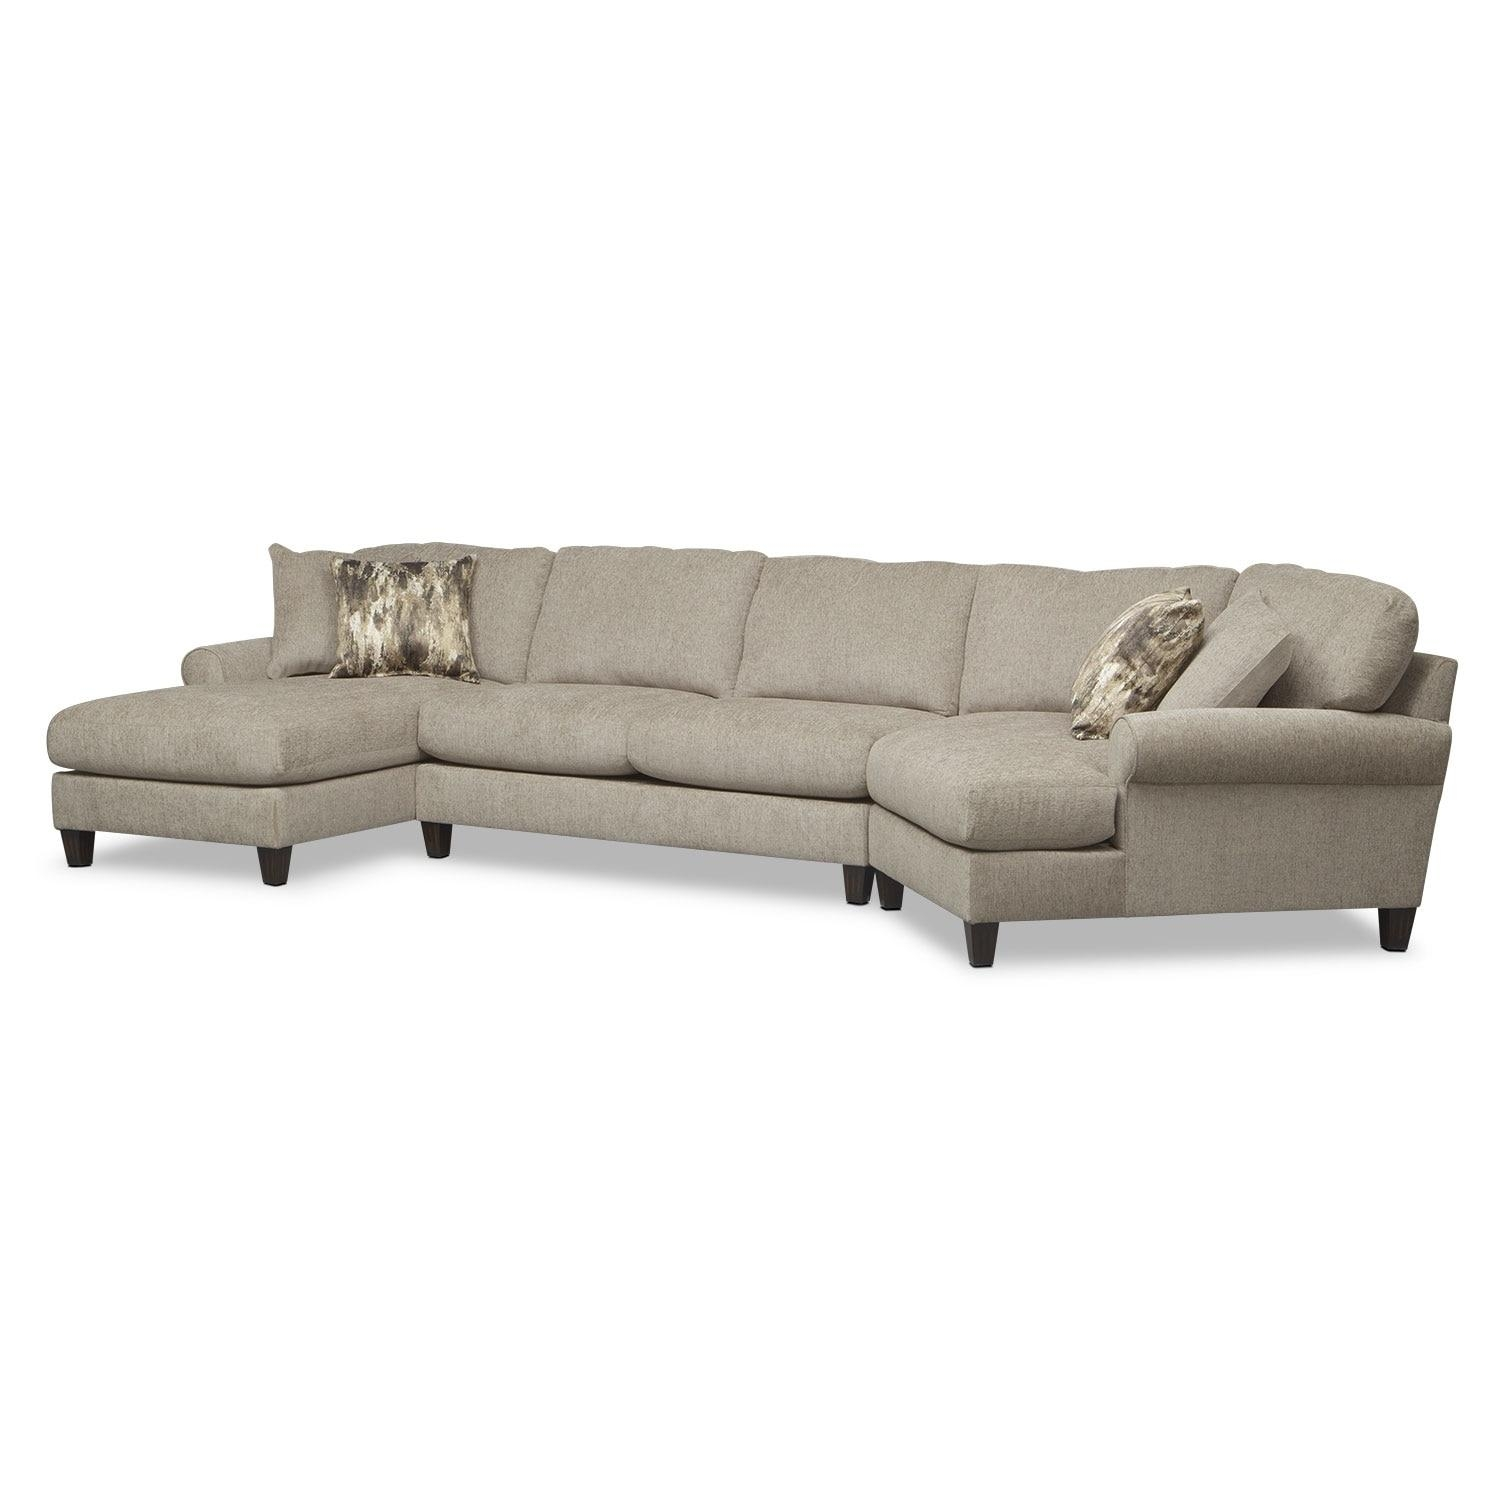 20 best ideas sectional sofa with cuddler chaise sofa ideas for Sectional sofa with chaise and cuddler